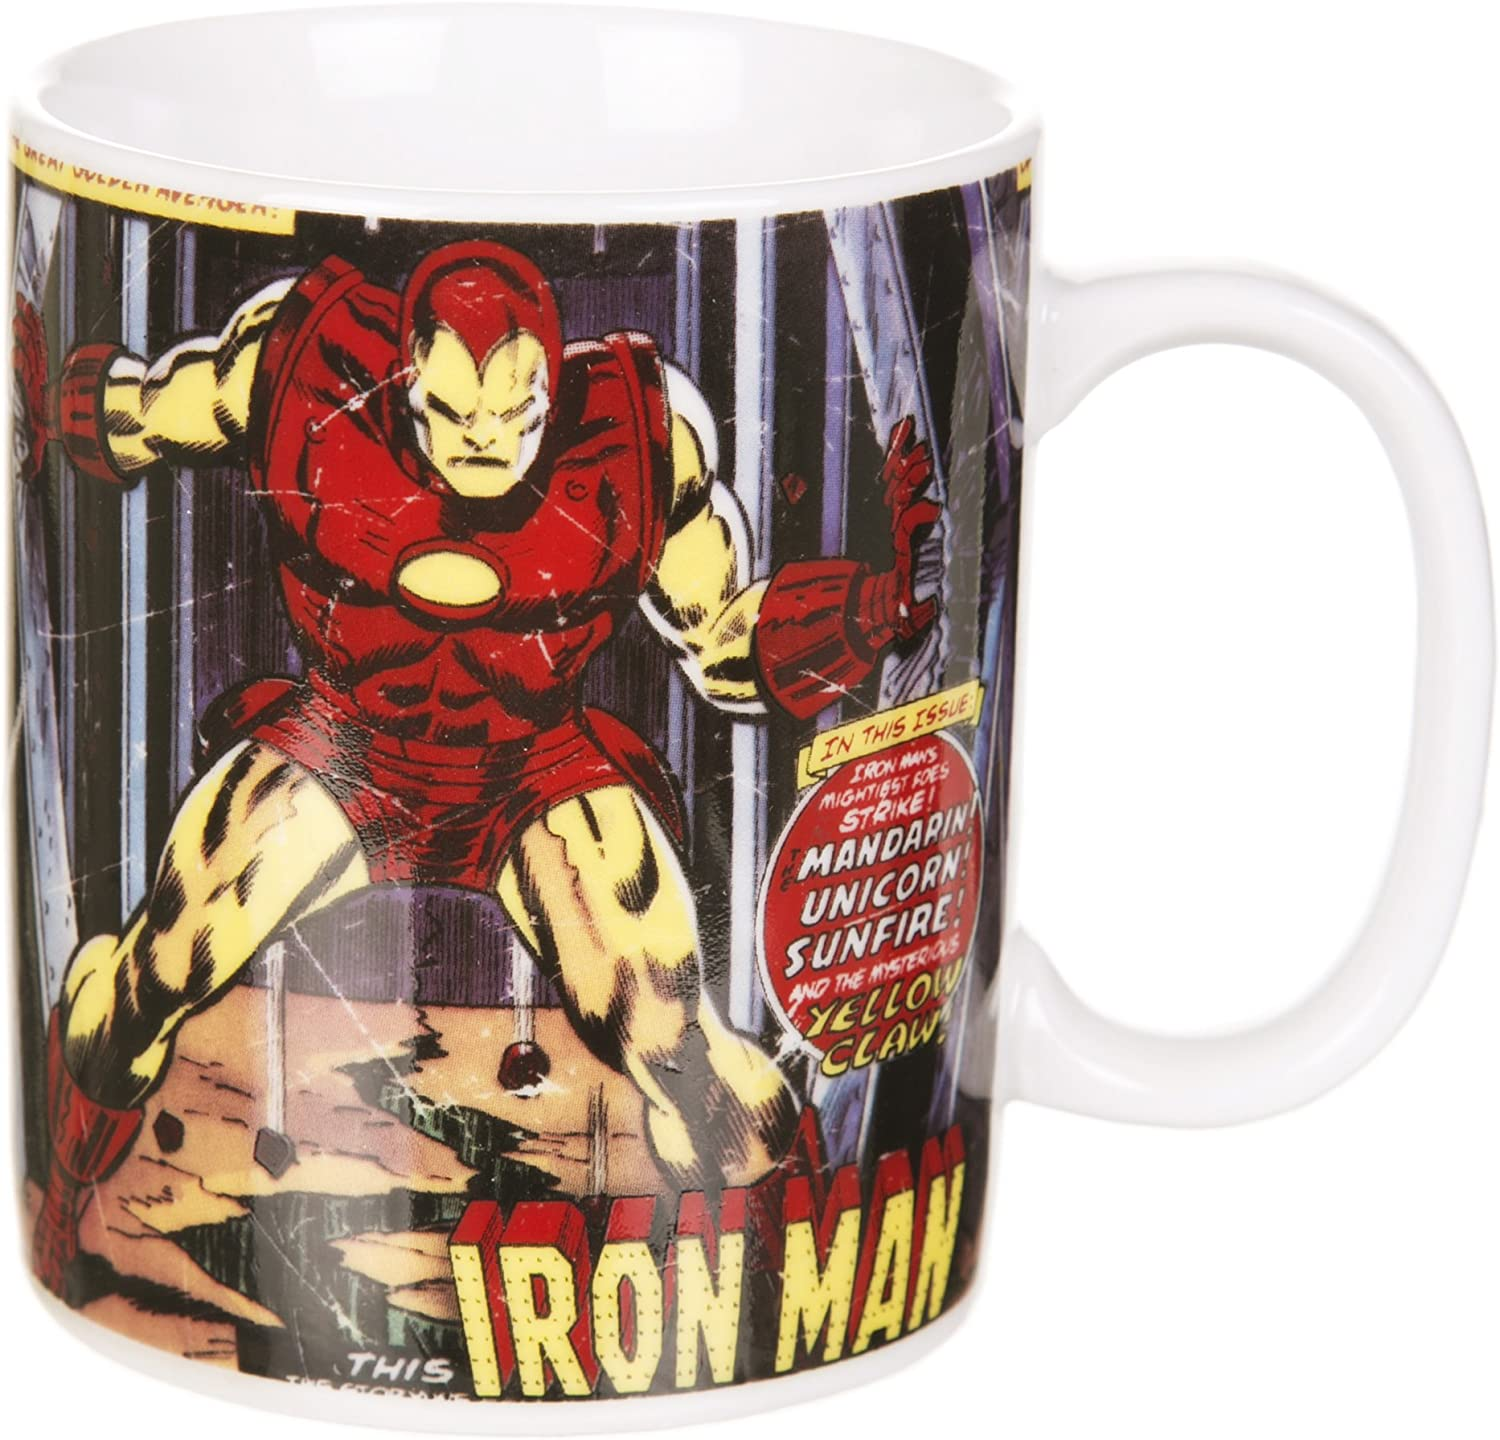 OFFICIAL MARVEL COMICS HEAT CHANGING IRON MAN MUG CUP NEW /& GIFT BOXED